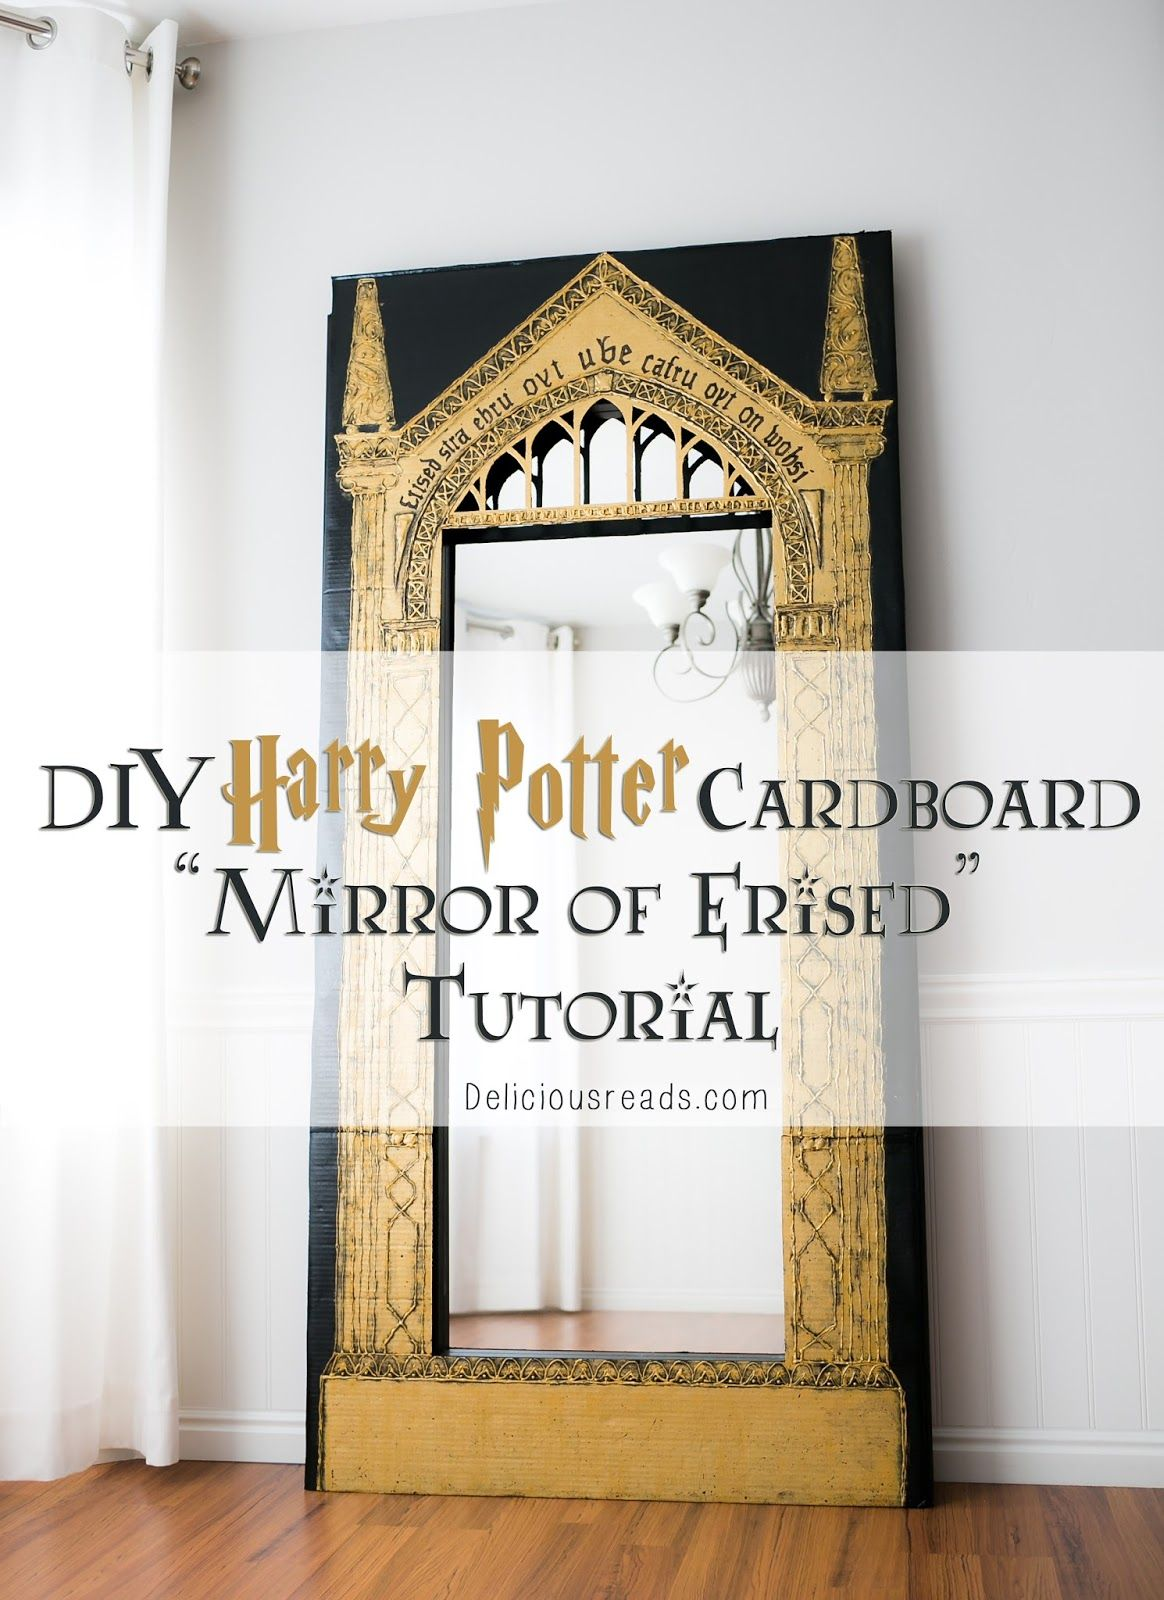 potter frenchy party une f te chez harry potter inspiration le miroir du rised erised. Black Bedroom Furniture Sets. Home Design Ideas